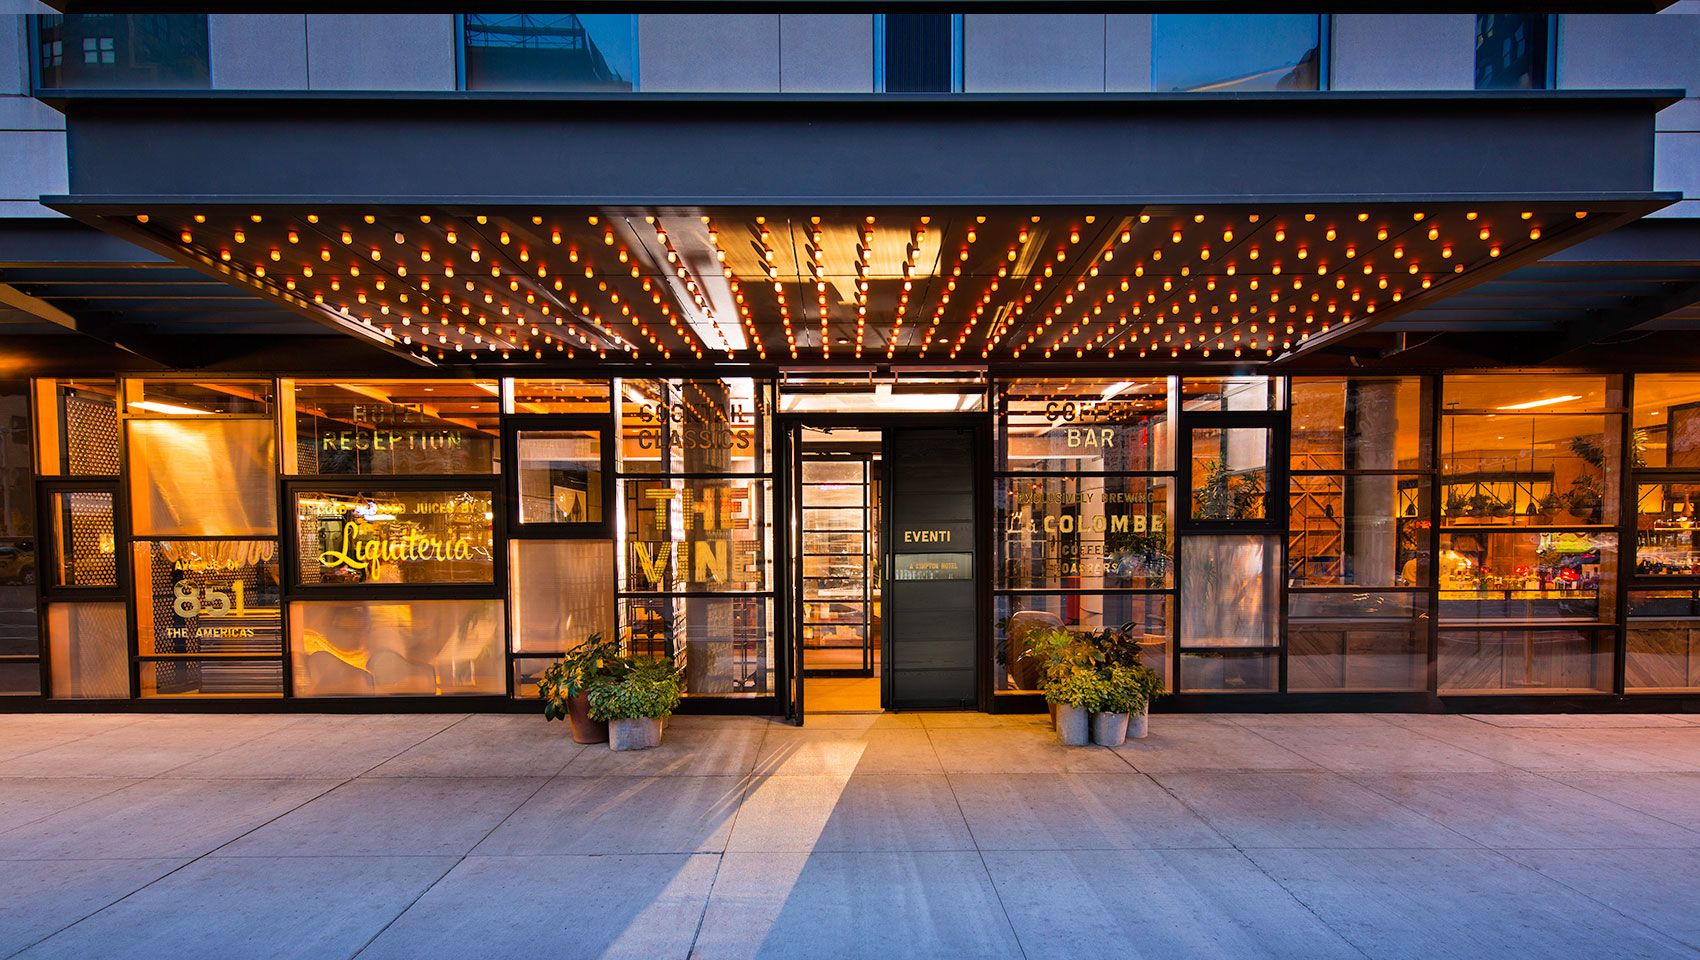 Enjoy Sky Rise Luxury And Stellar Service At Kimpton Hotel Eventi A High End Boutique In The Heart Of Chelsea Ny